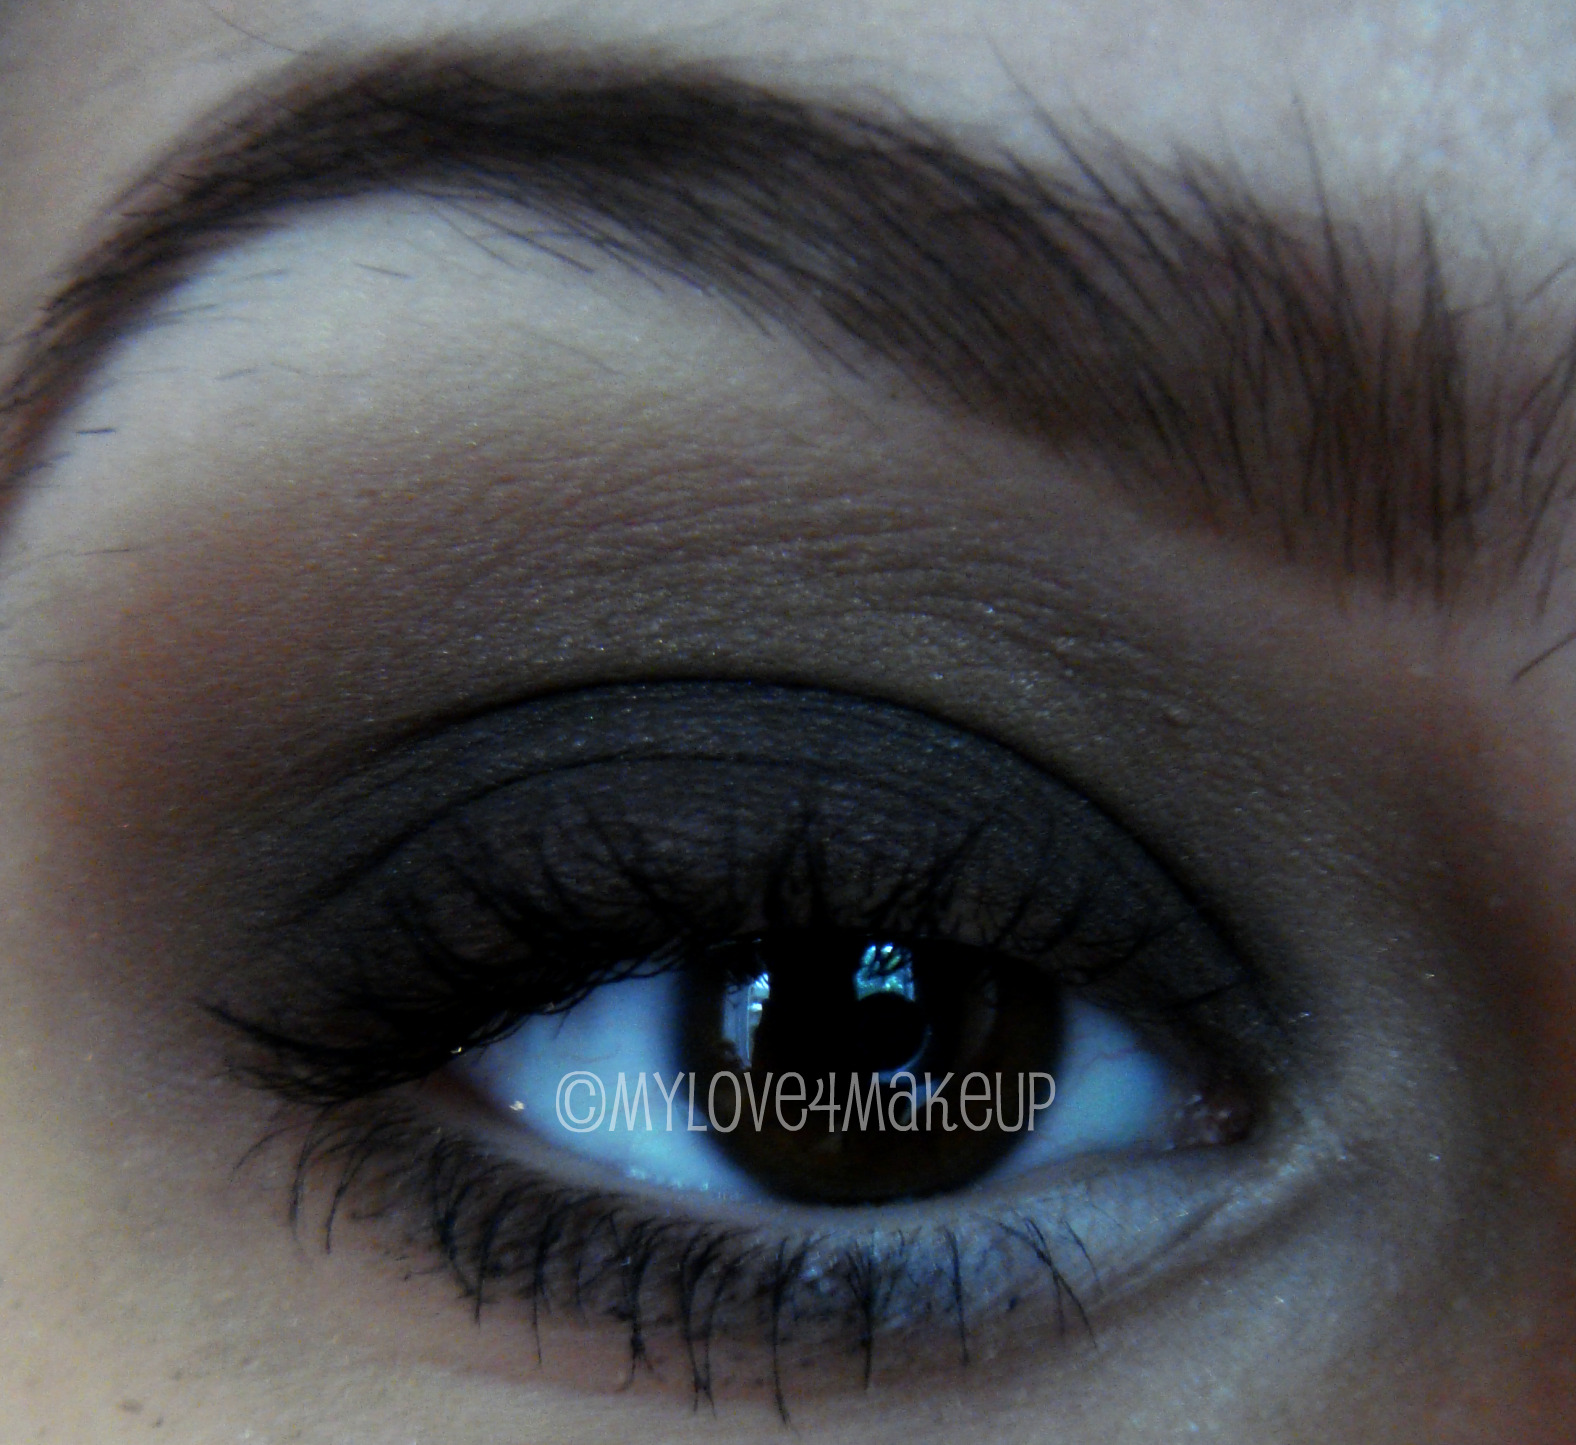 Mylove4makeup fotd bedroom eyes for Bedroom eyes makeup